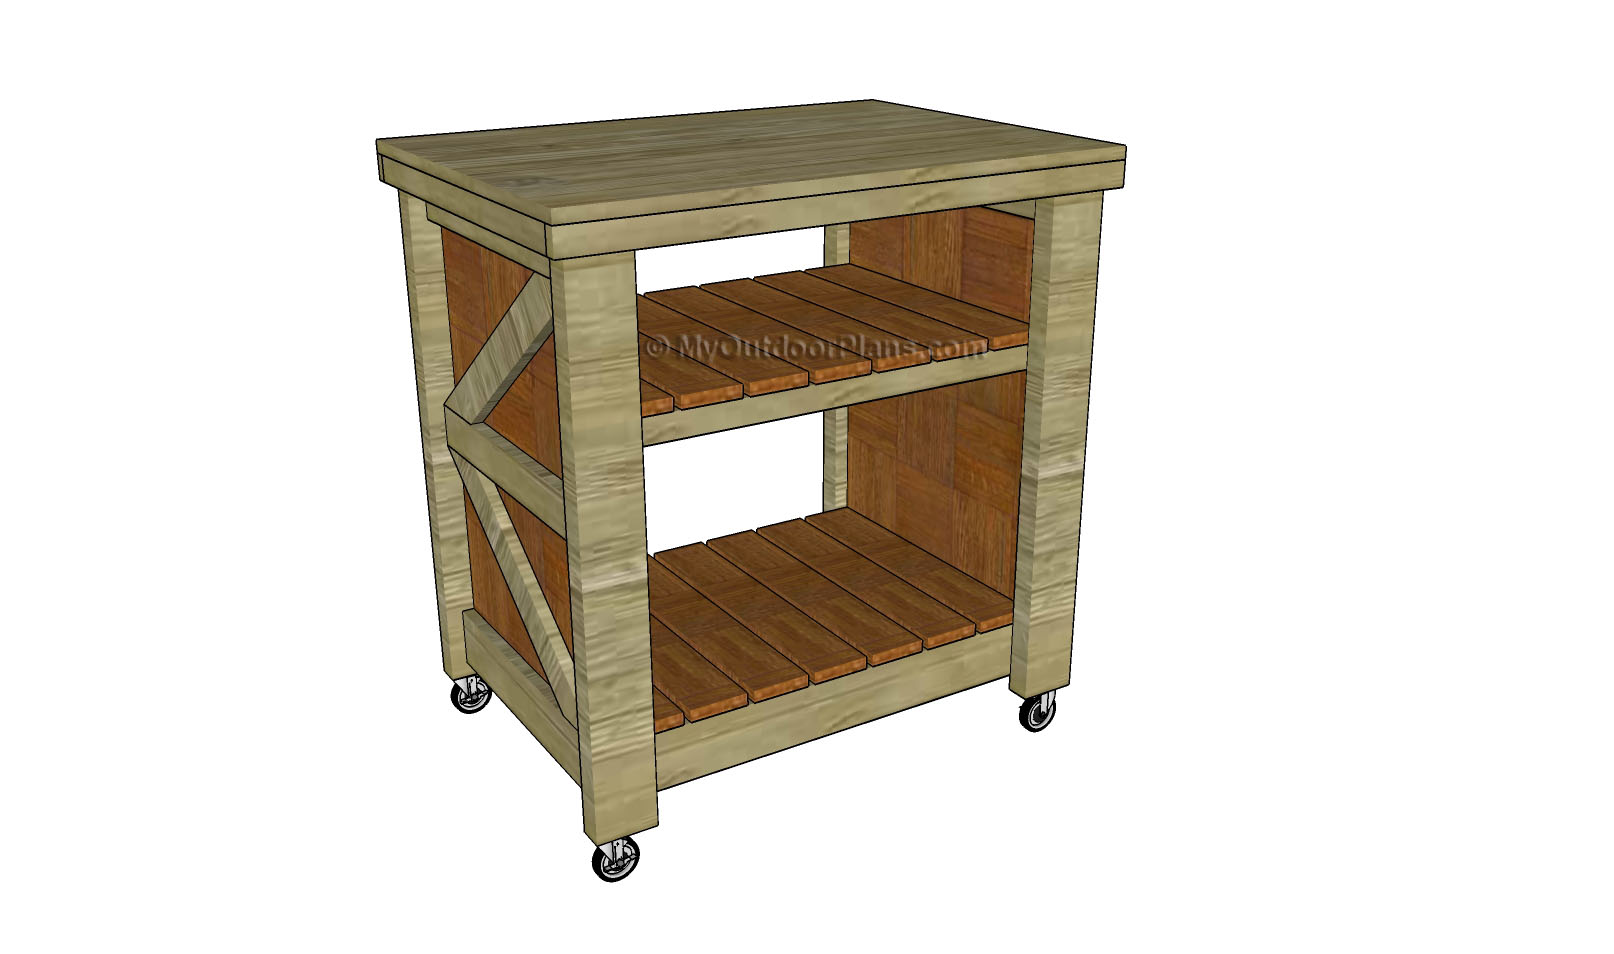 Plans Kitchen Island Small Kitchen Island Plans | Free Outdoor Plans - Diy Shed